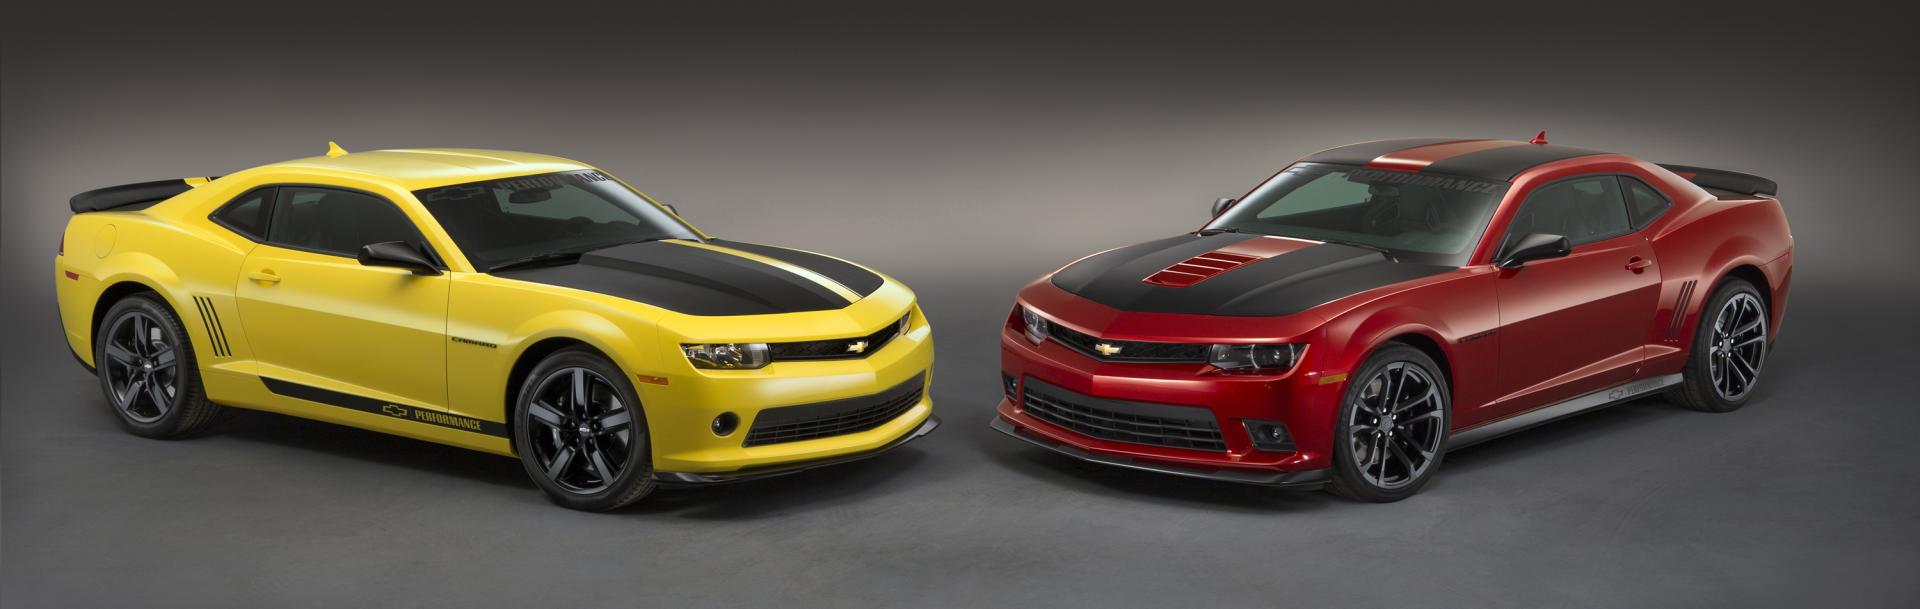 2013 chevrolet performance camaro concept. Cars Review. Best American Auto & Cars Review